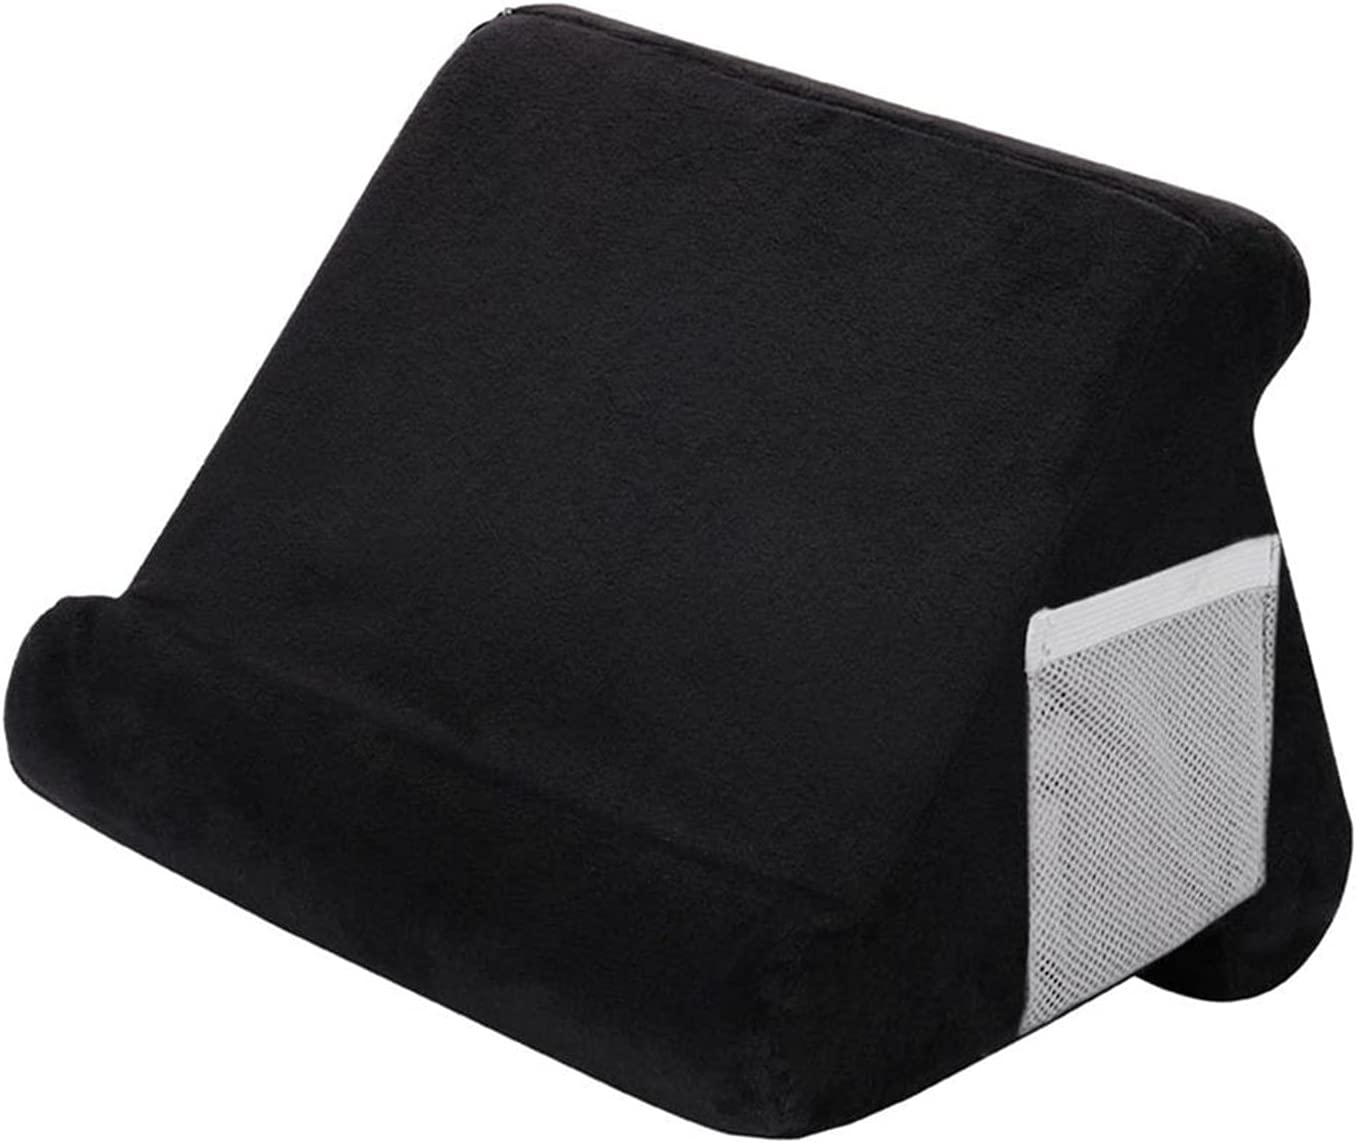 IHIO Tablet Pillow Holder Stand Soft Rest Suppo Max 58% OFF Bed ...